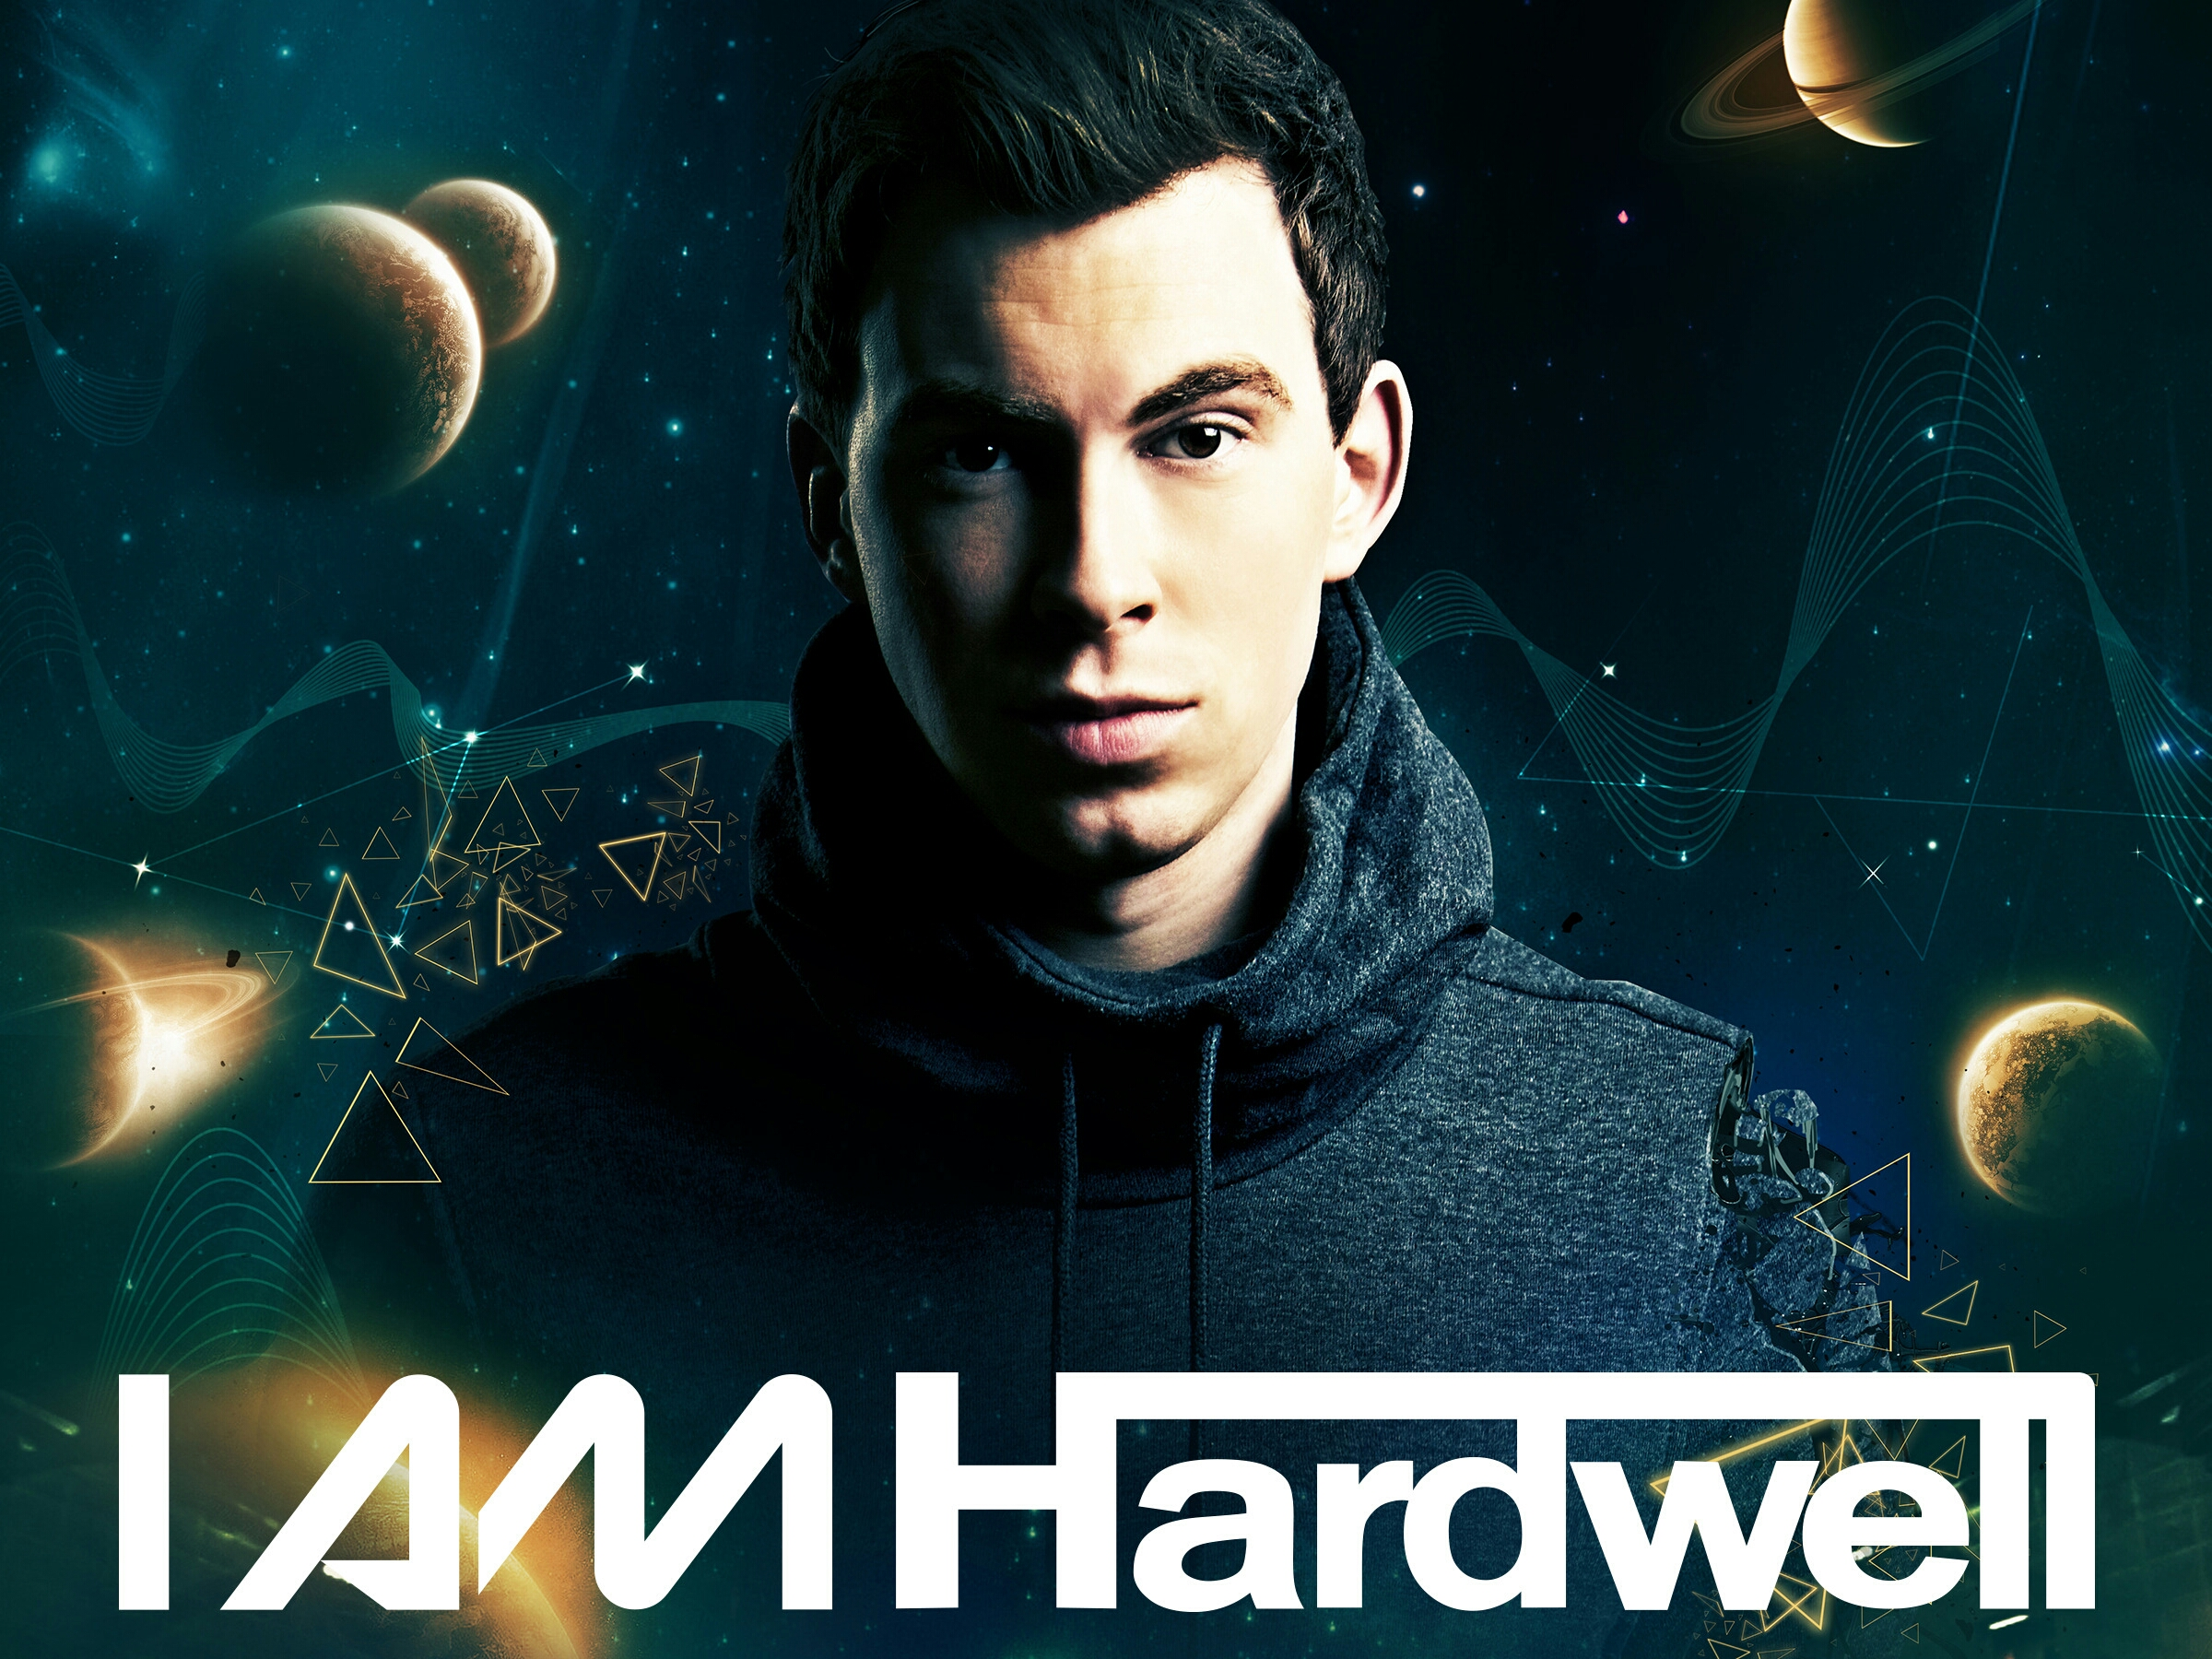 hardwell wallpaper hd - photo #28